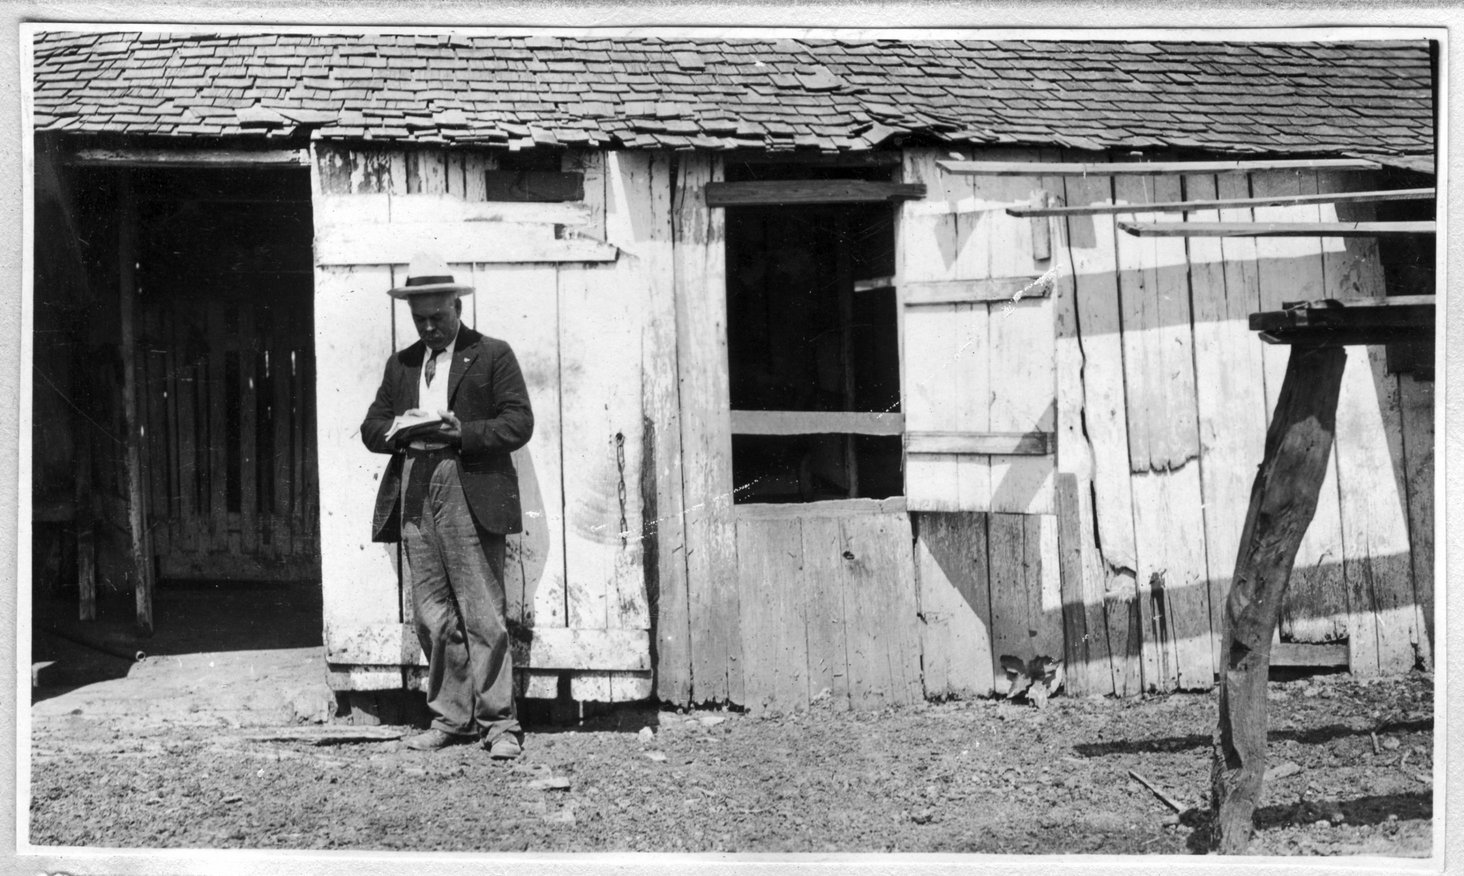 008~O. W. Meador Milk Barn Aug 1920.jpg